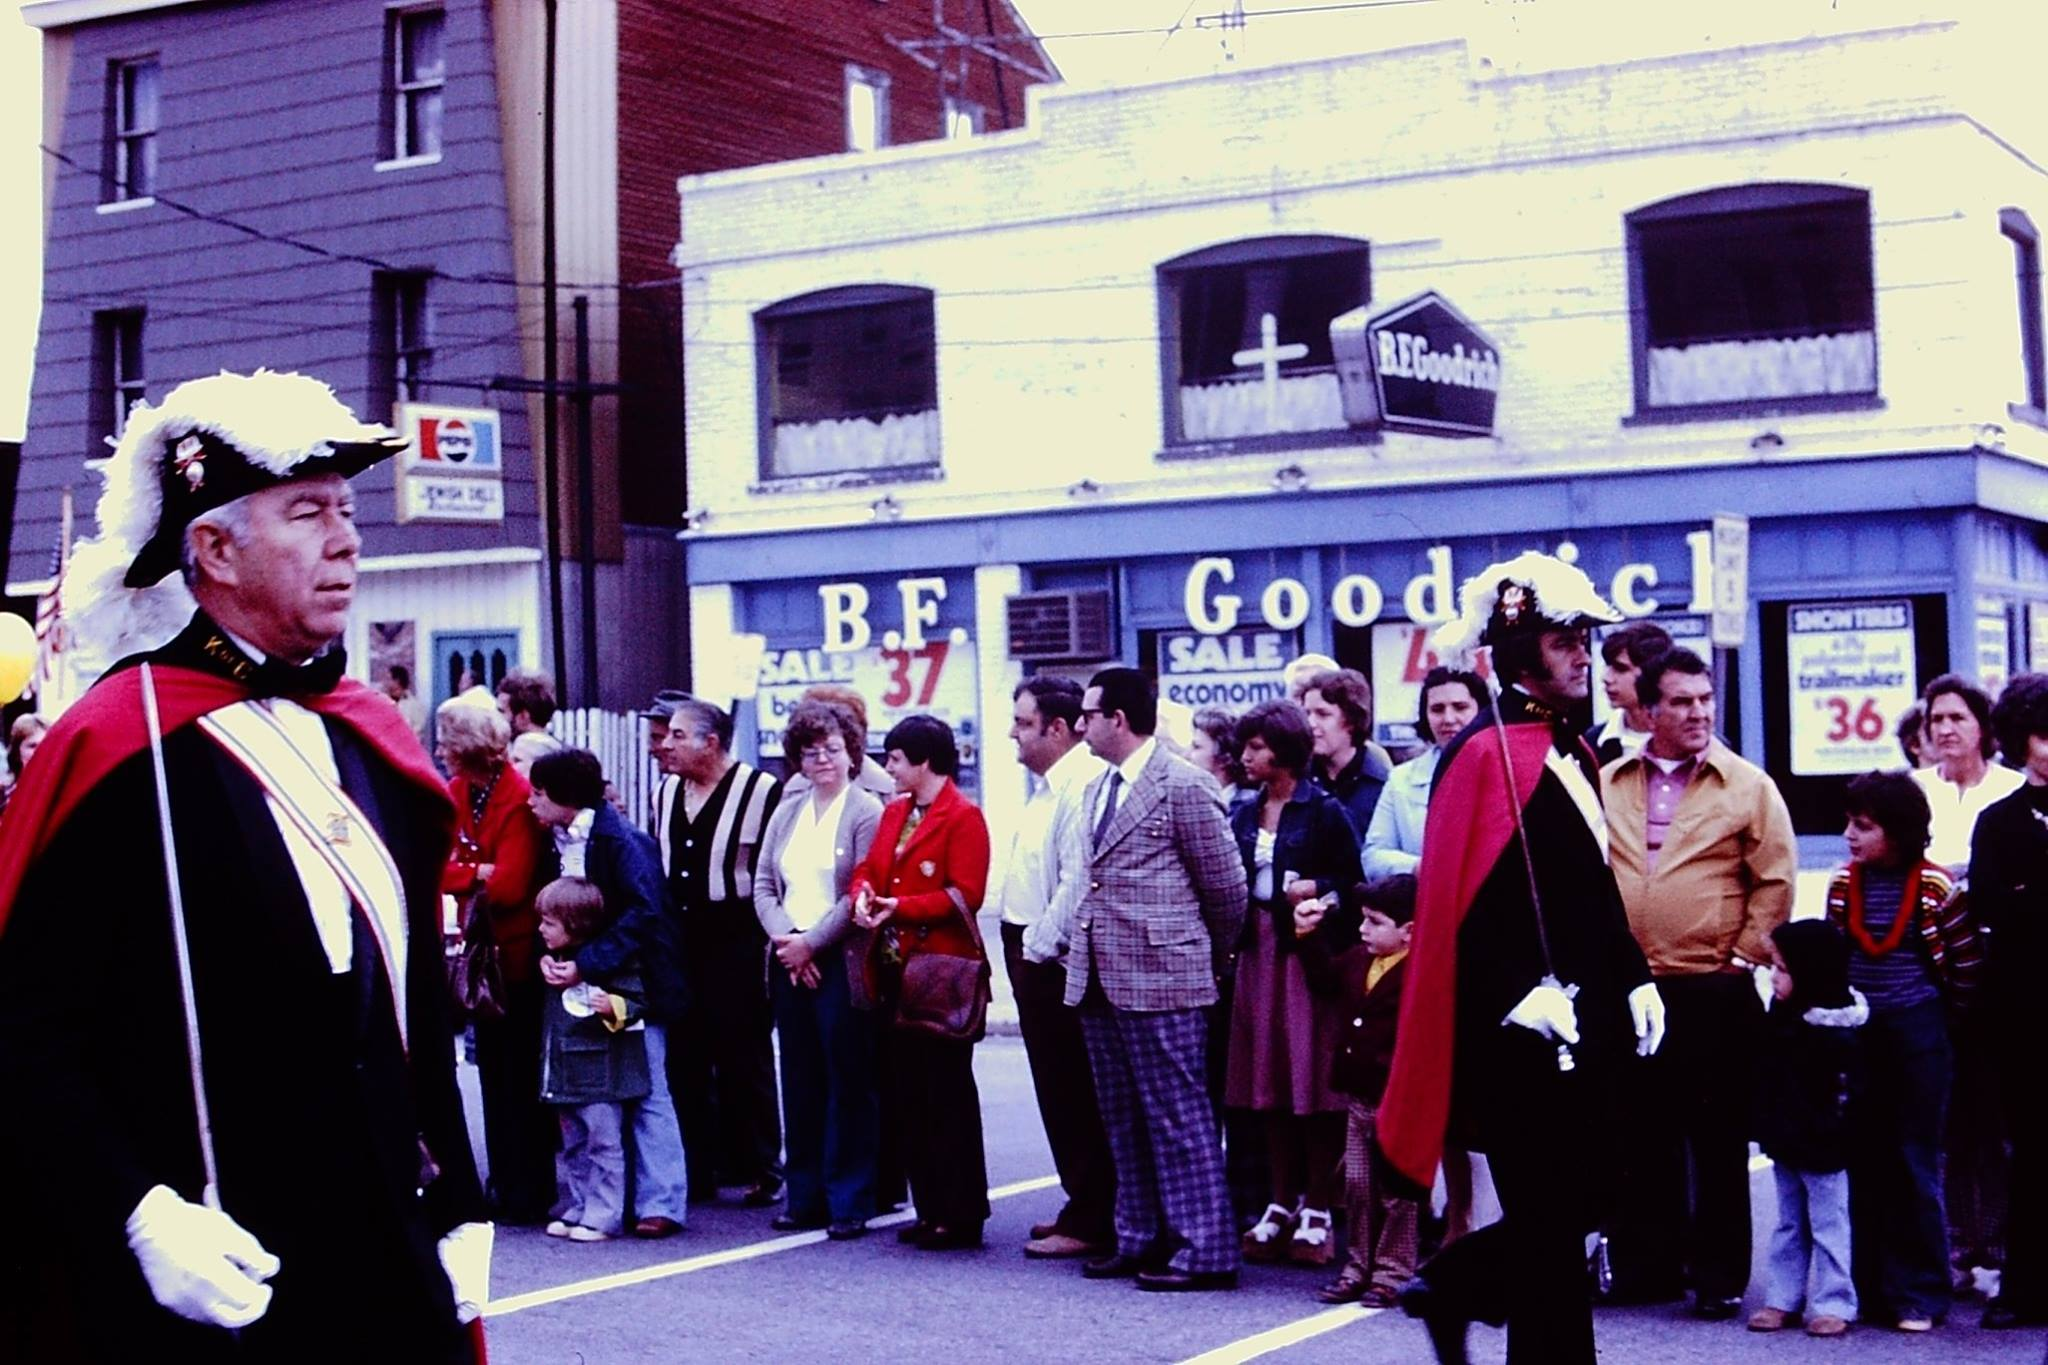 A crowd stands in front of the B.F. Goodrich Store in Newburgh, New York as they await the parade.